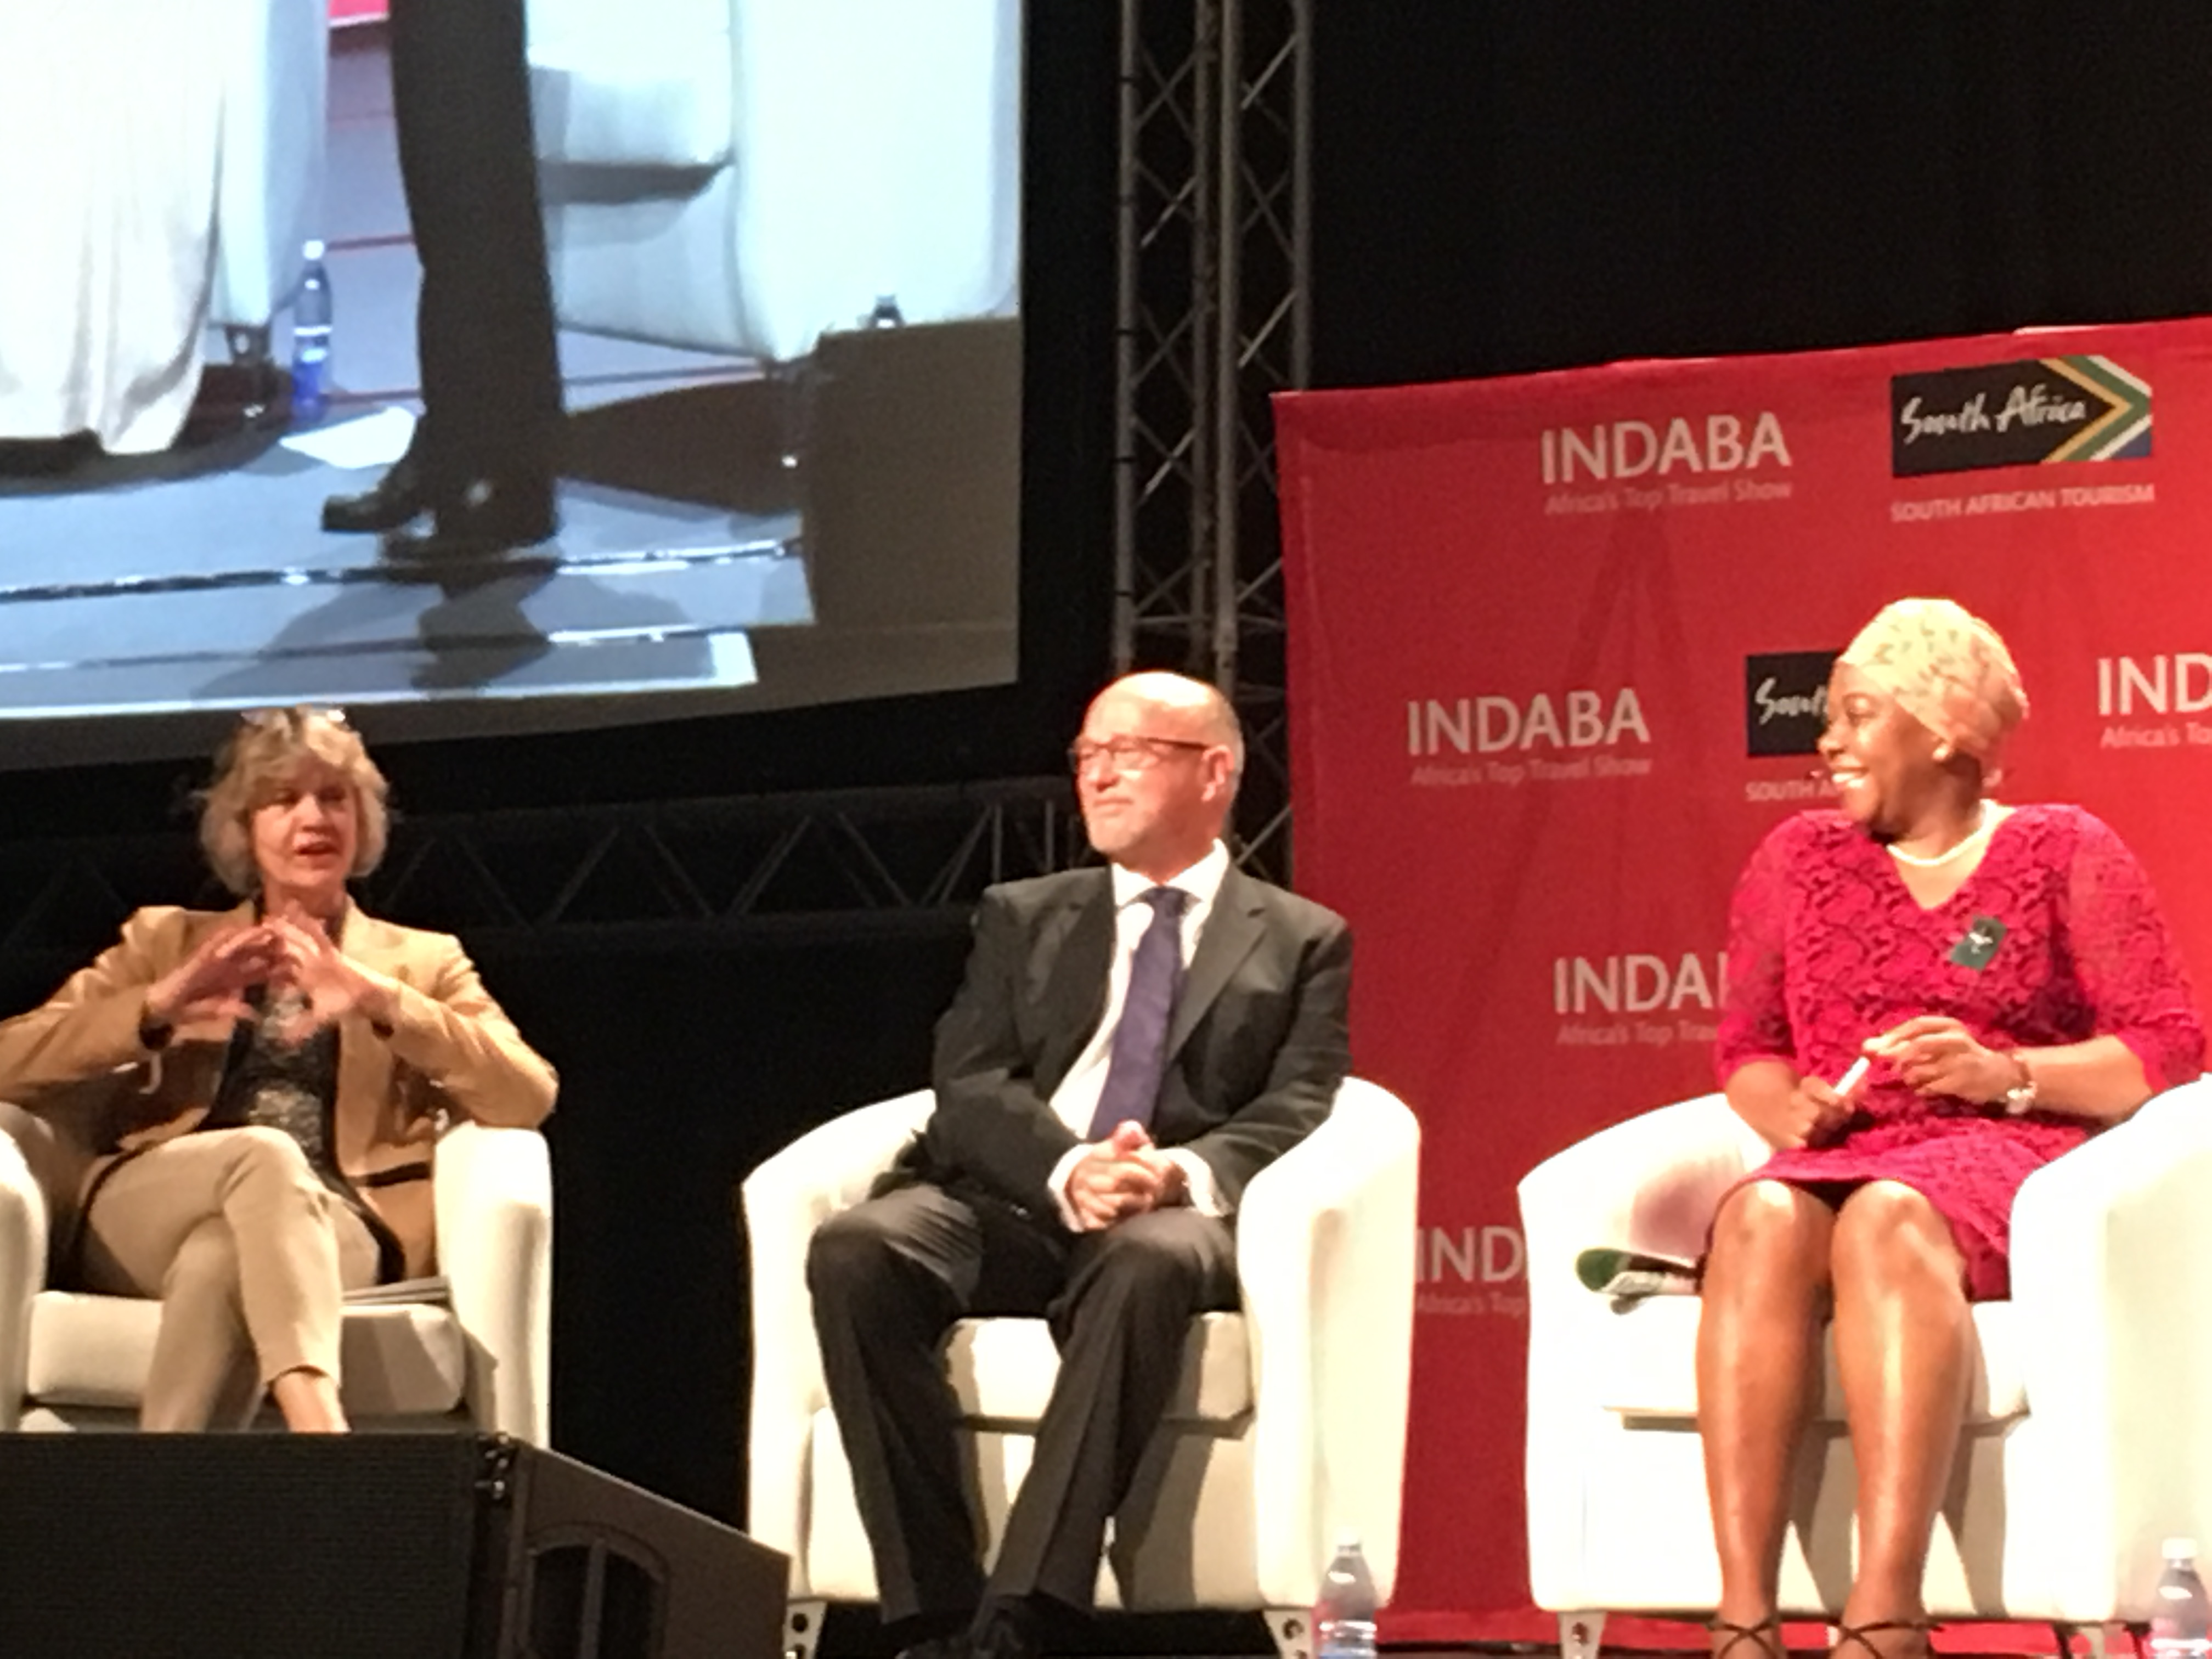 INDABA has positioned itself as the largest tourism fair in Africa